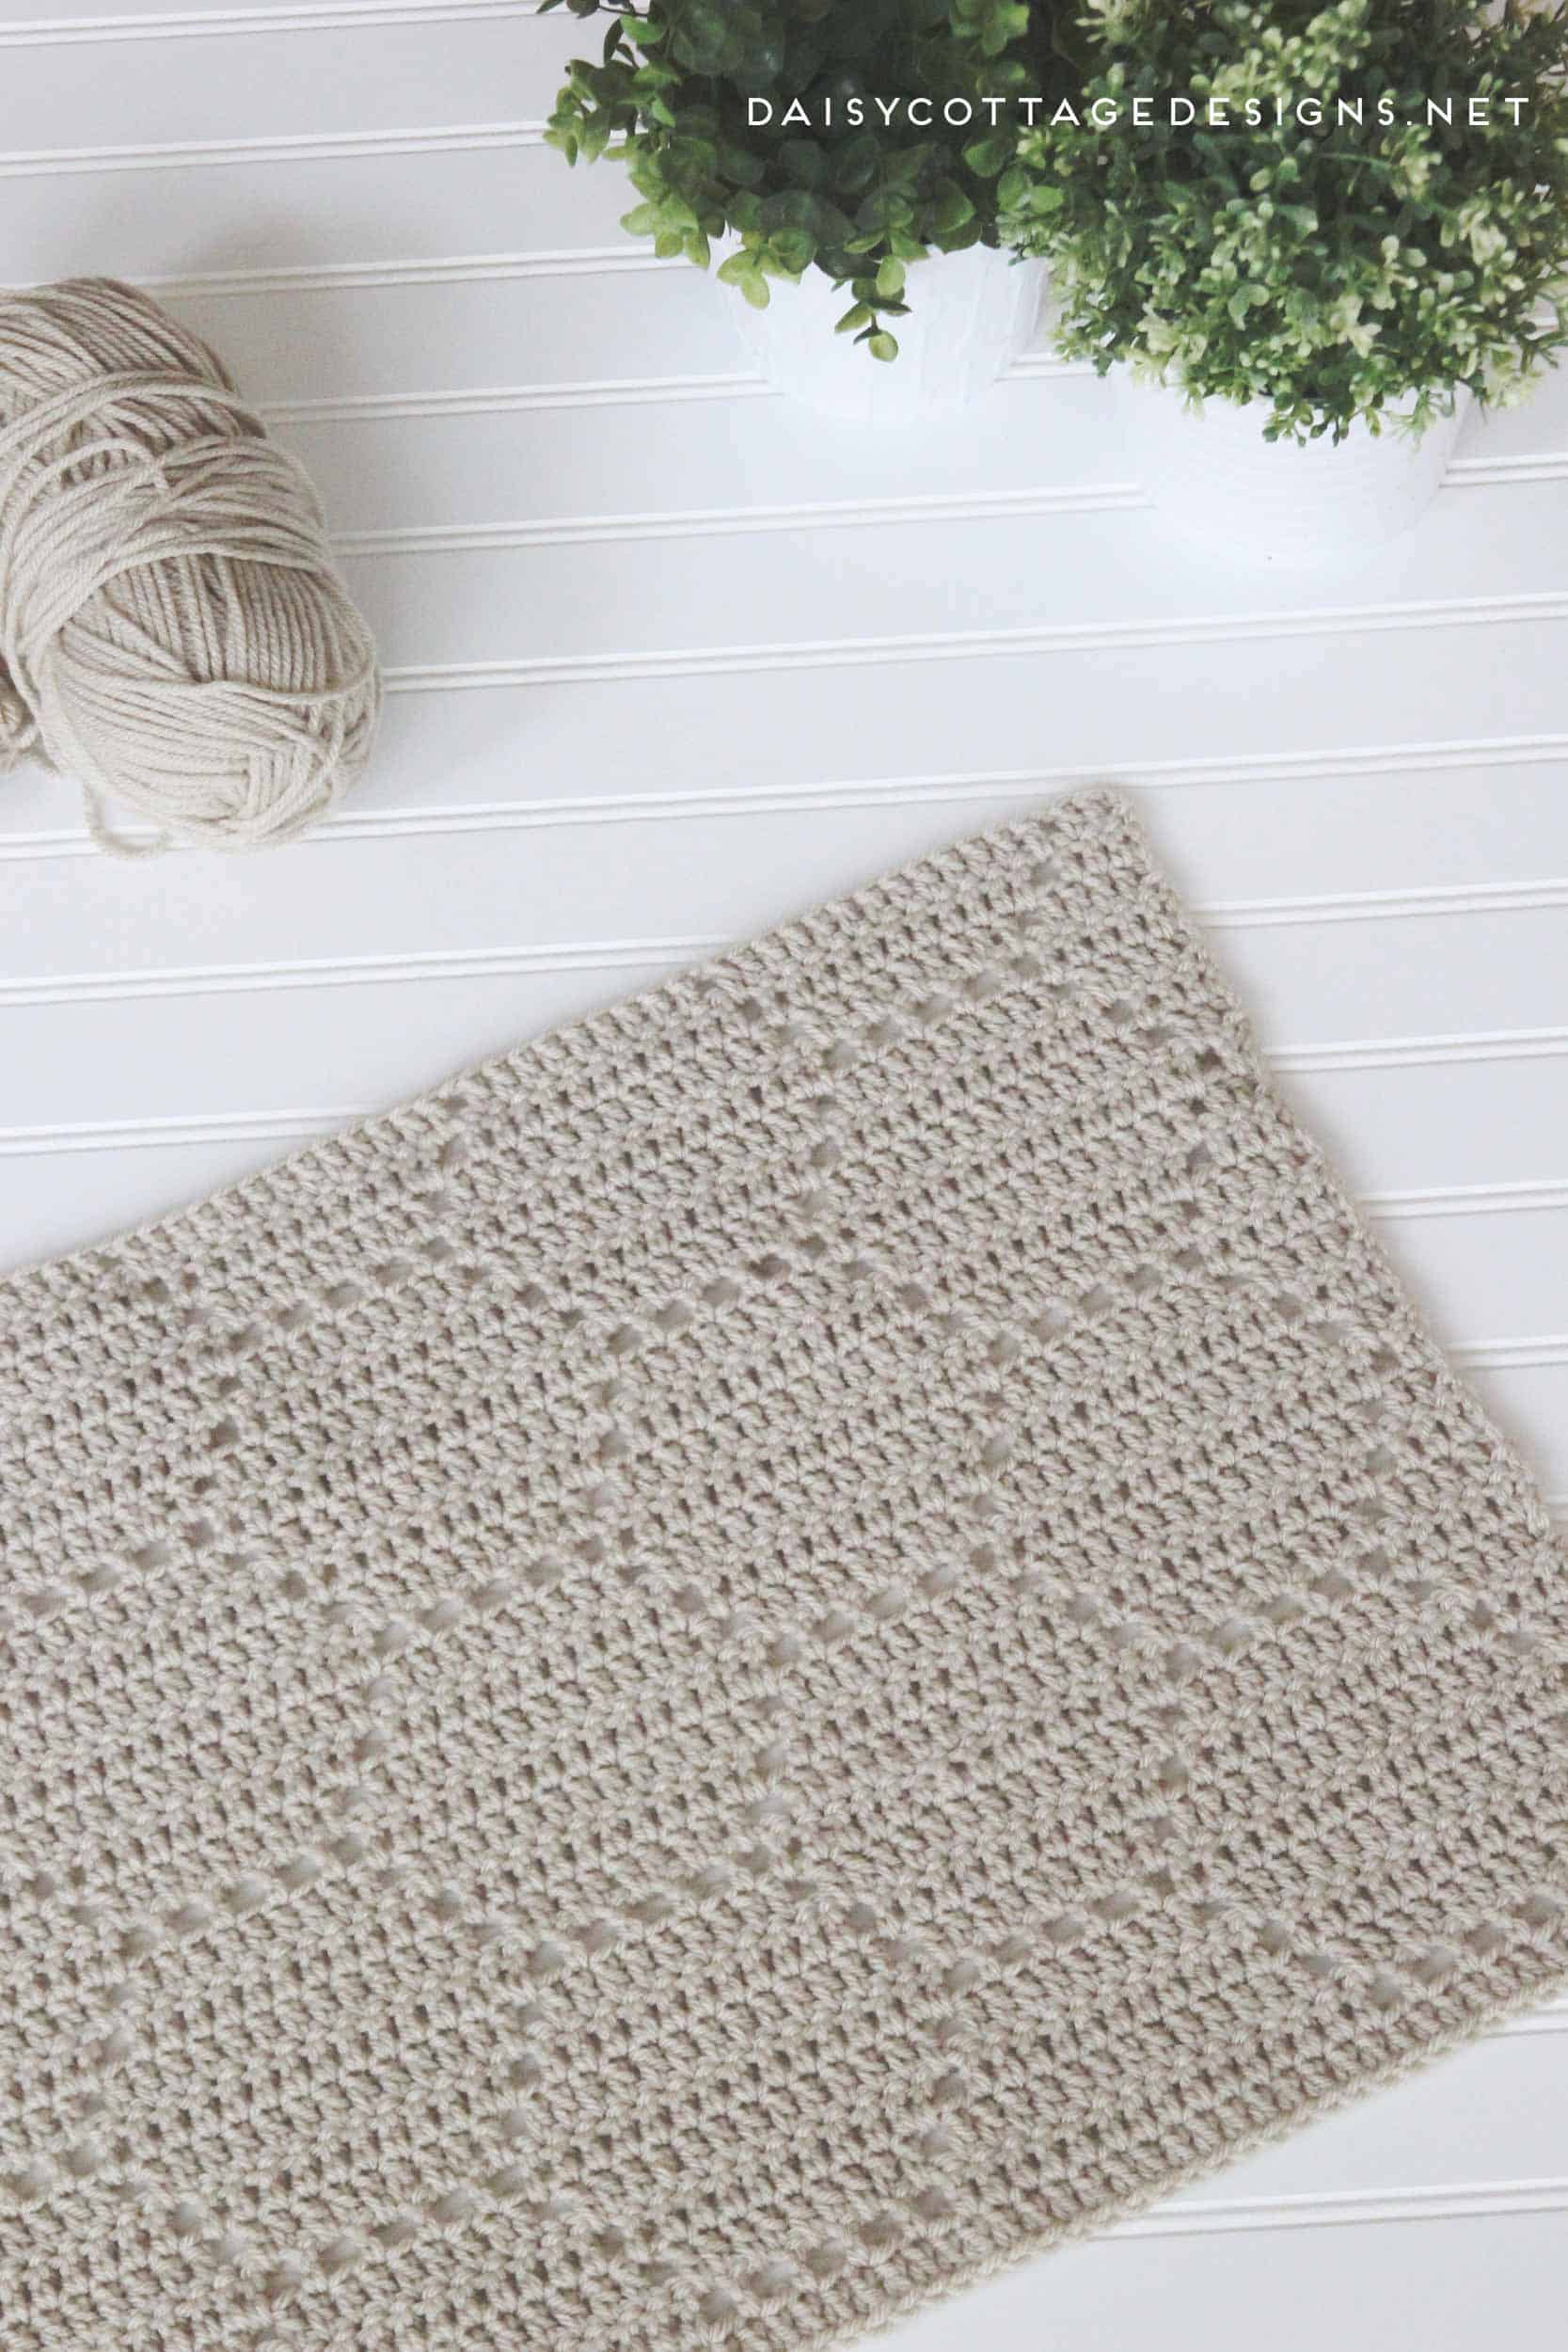 Honeycomb Crochet Blanket A Pattern Review Daisy Cottage Designs